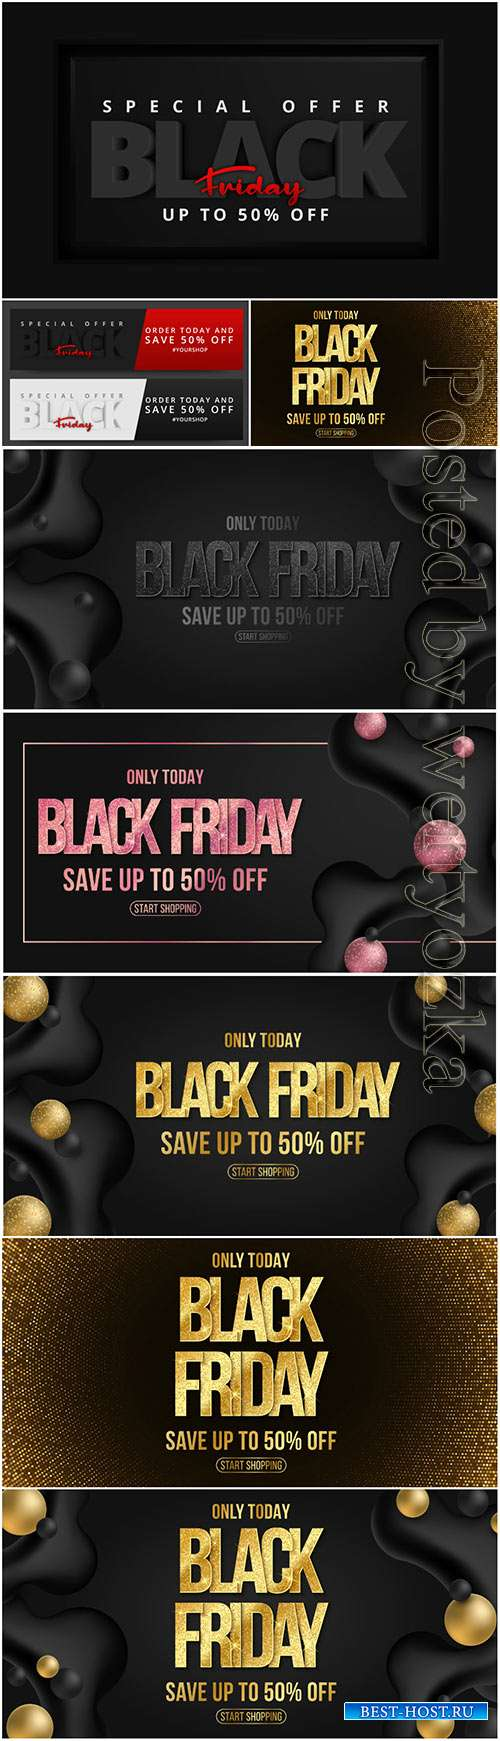 Elegant banner for black friday sale